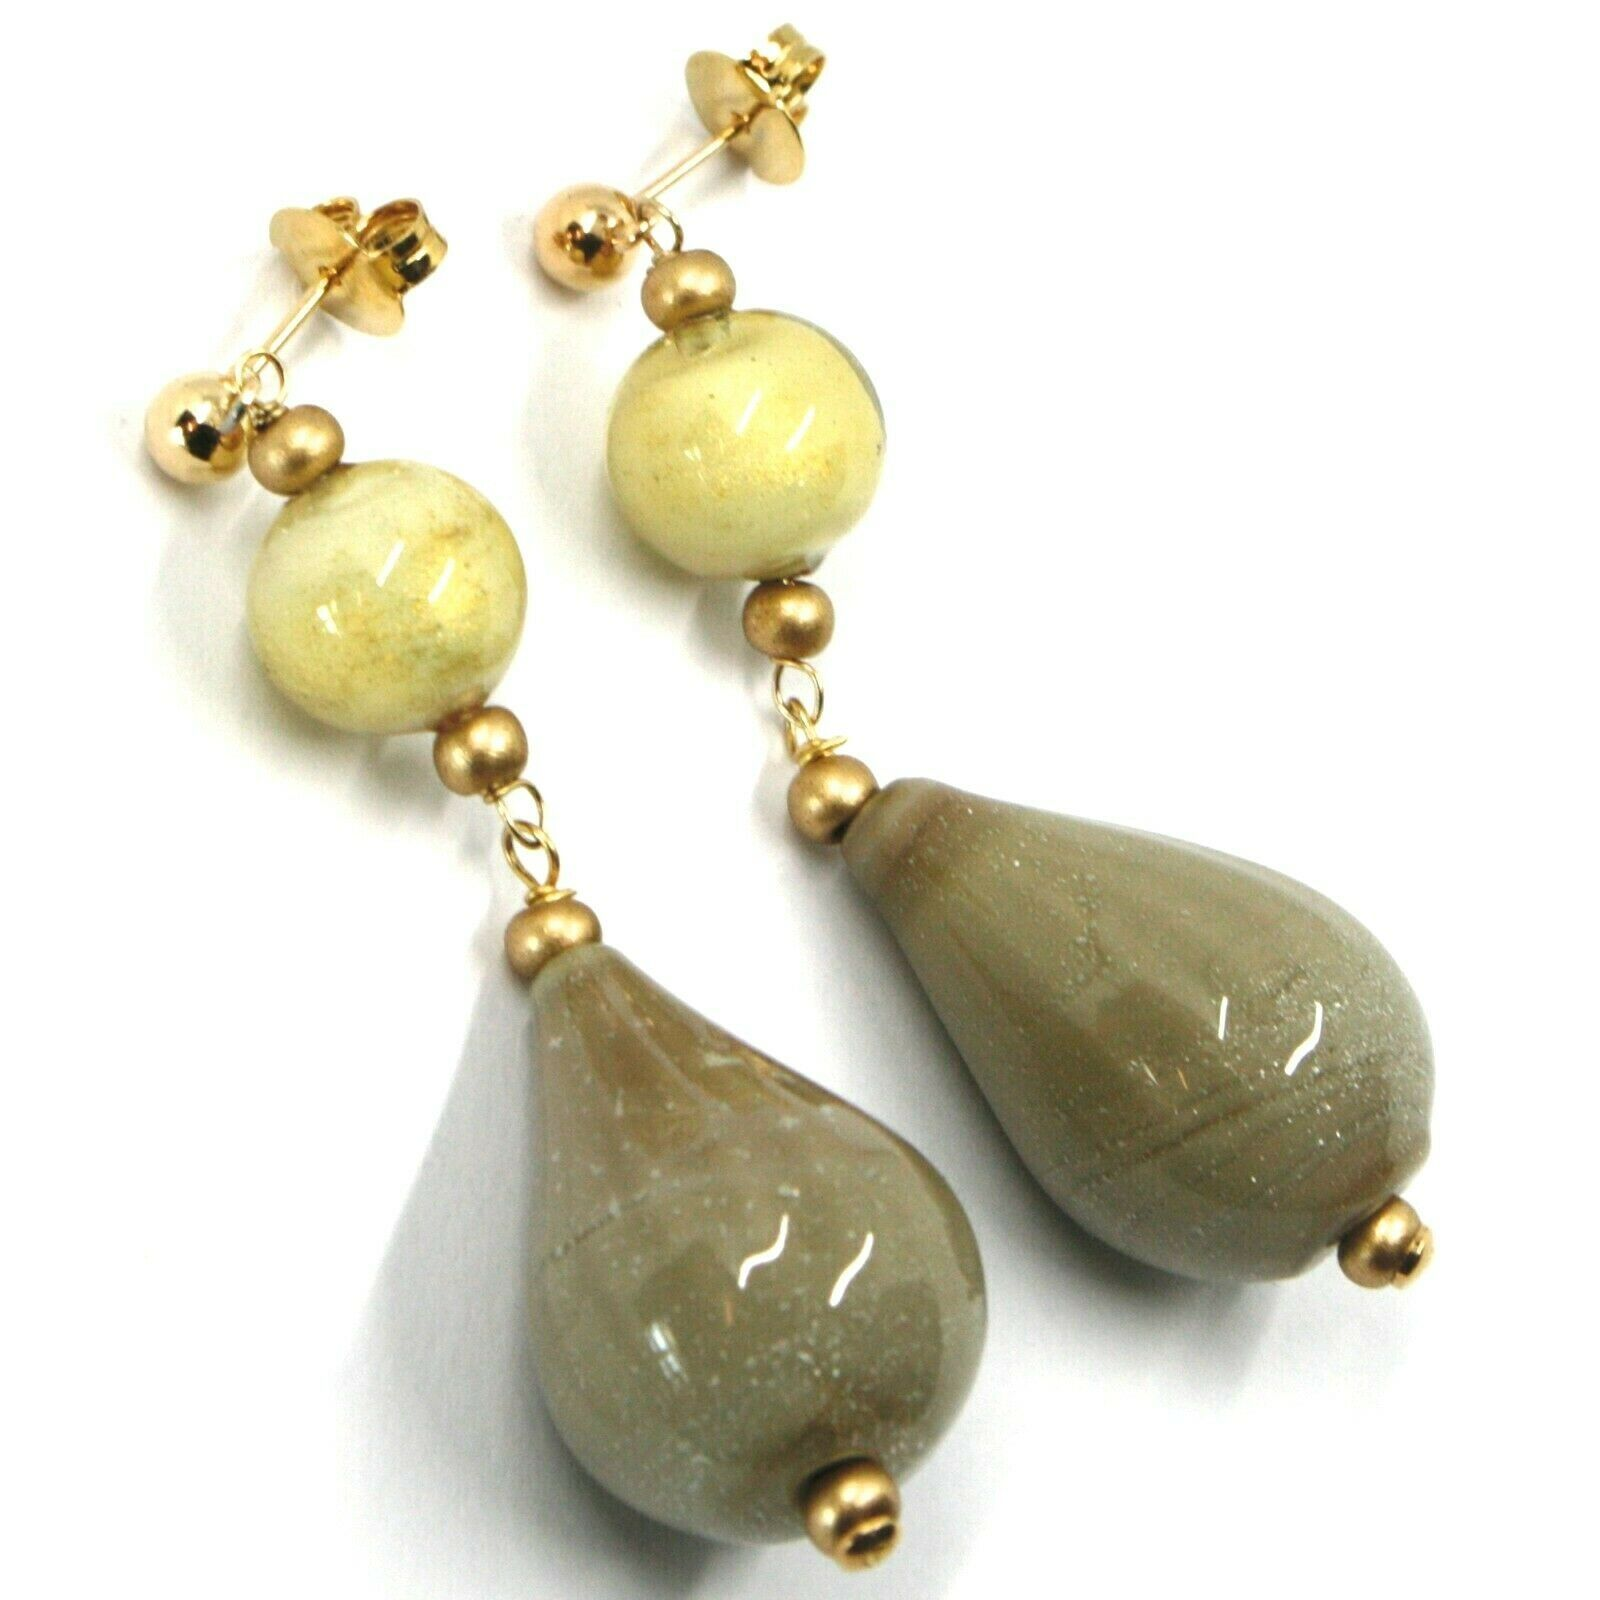 Earrings Antica Murrina Venezia, OR631A57, Hanging, Drop Glass Beige 1 3/16in